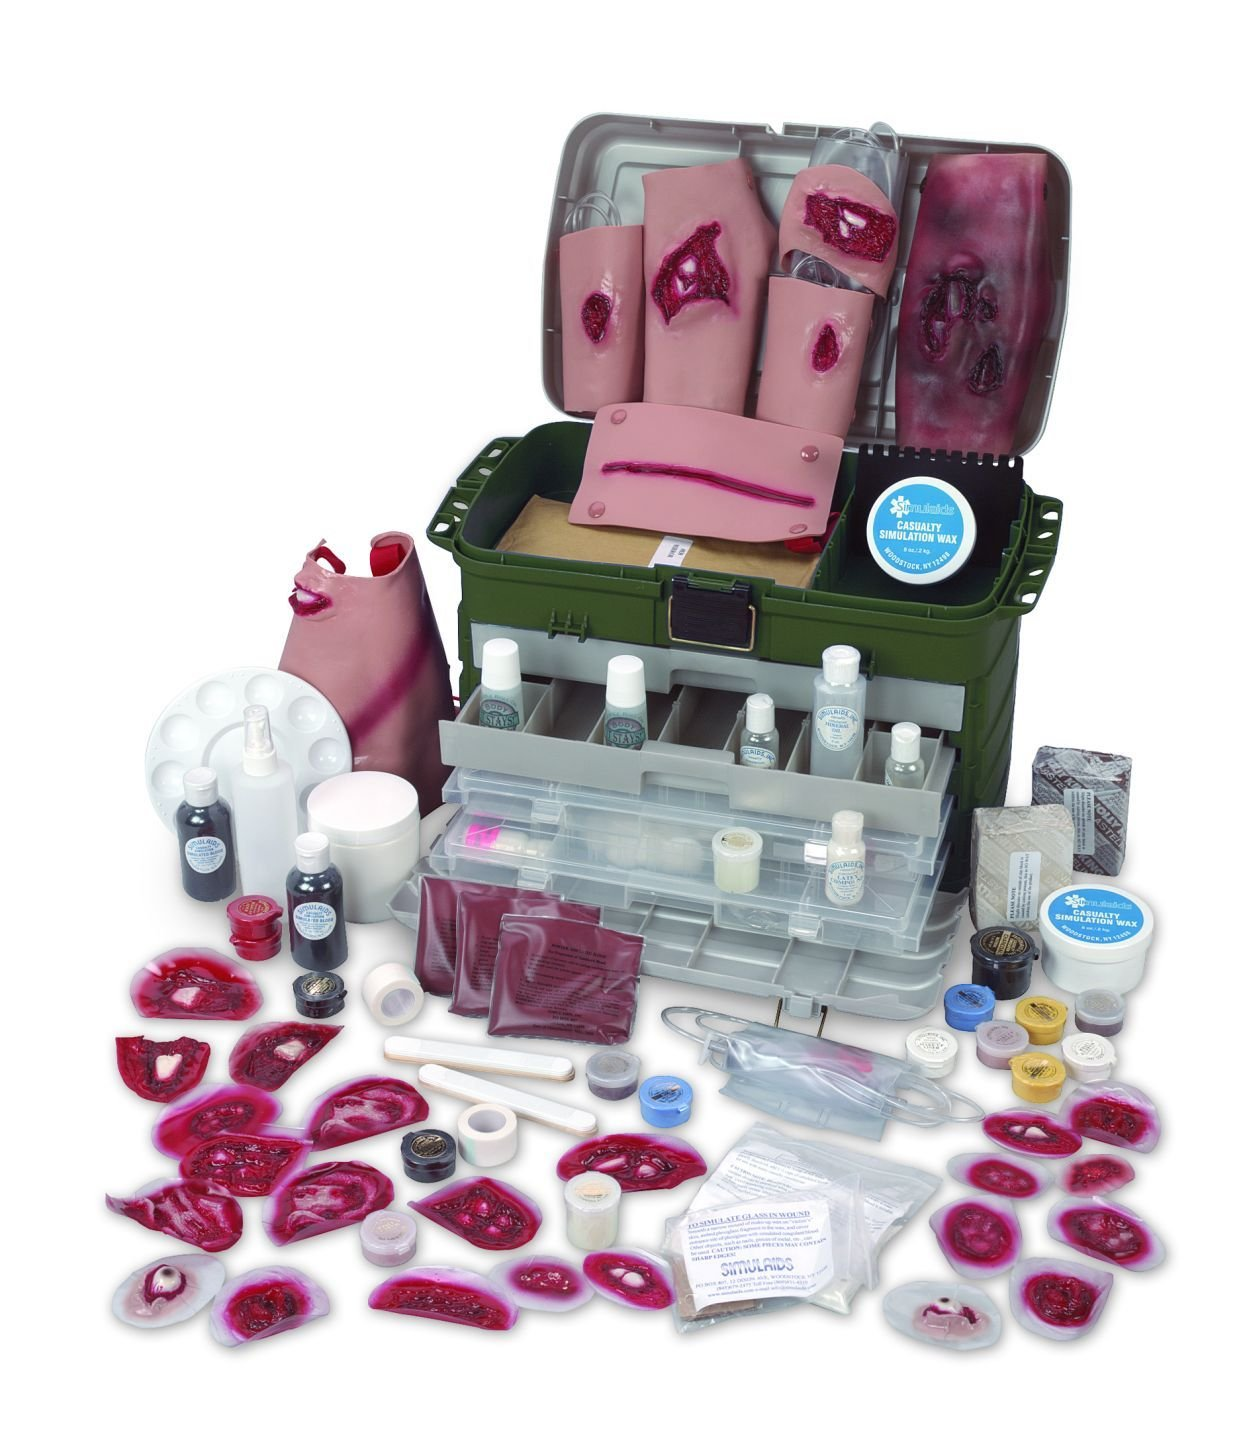 Simulaids Deluxe Casualty Simulation Kit 22'' X 13'' X 15'' Simulation Kit